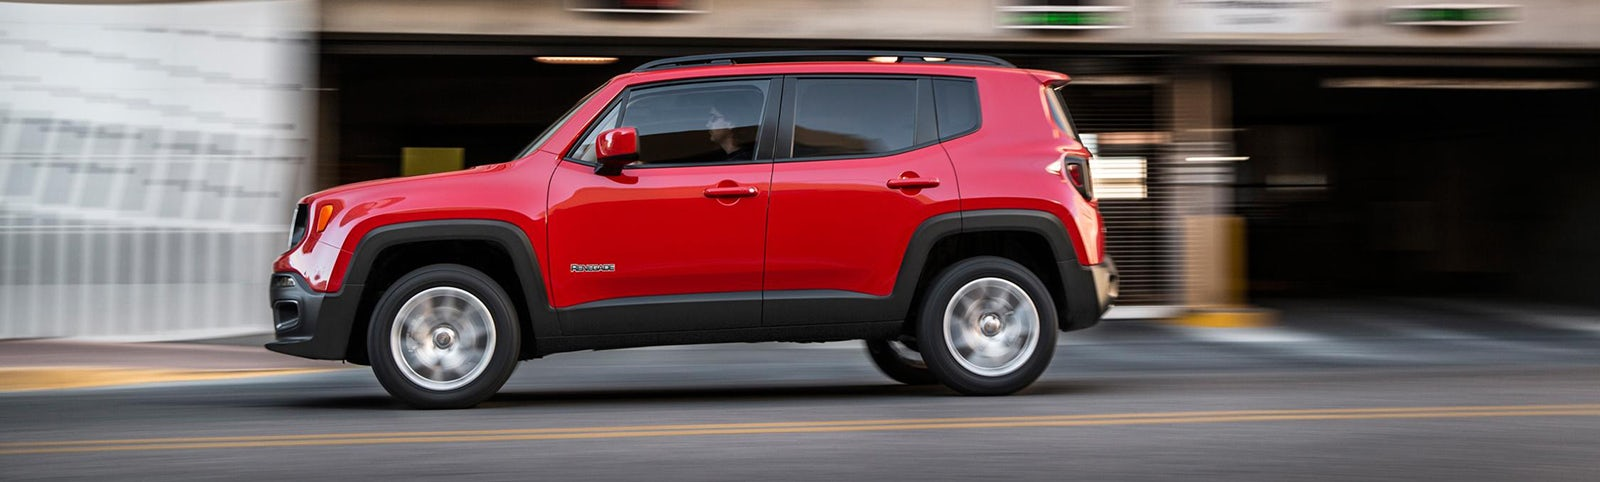 jeep renegade dimensions and sizes guide | carwow